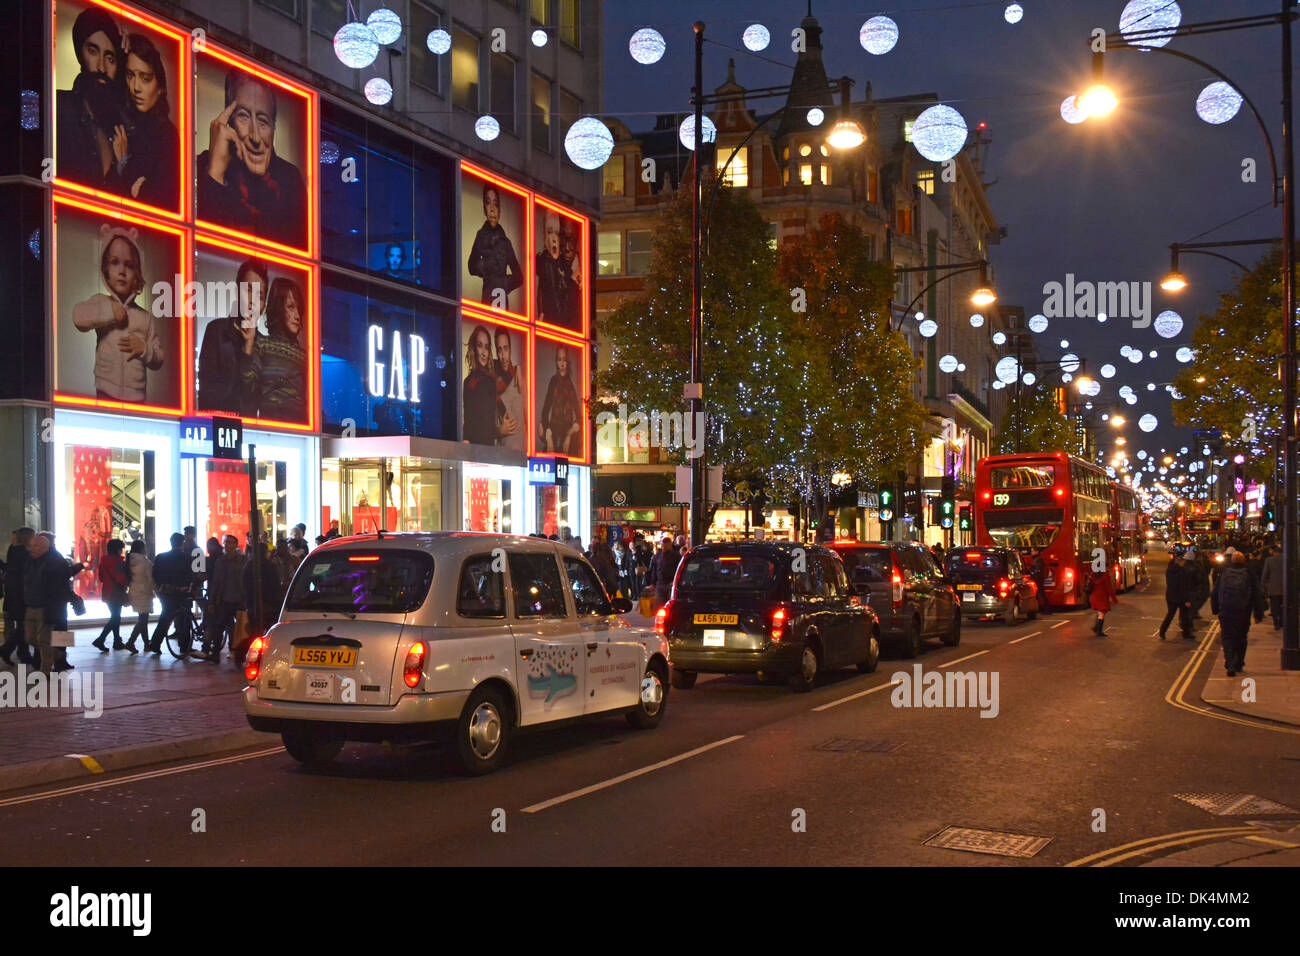 London taxis and buses queuing in Oxford Street  below Christmas decorations - Stock Image